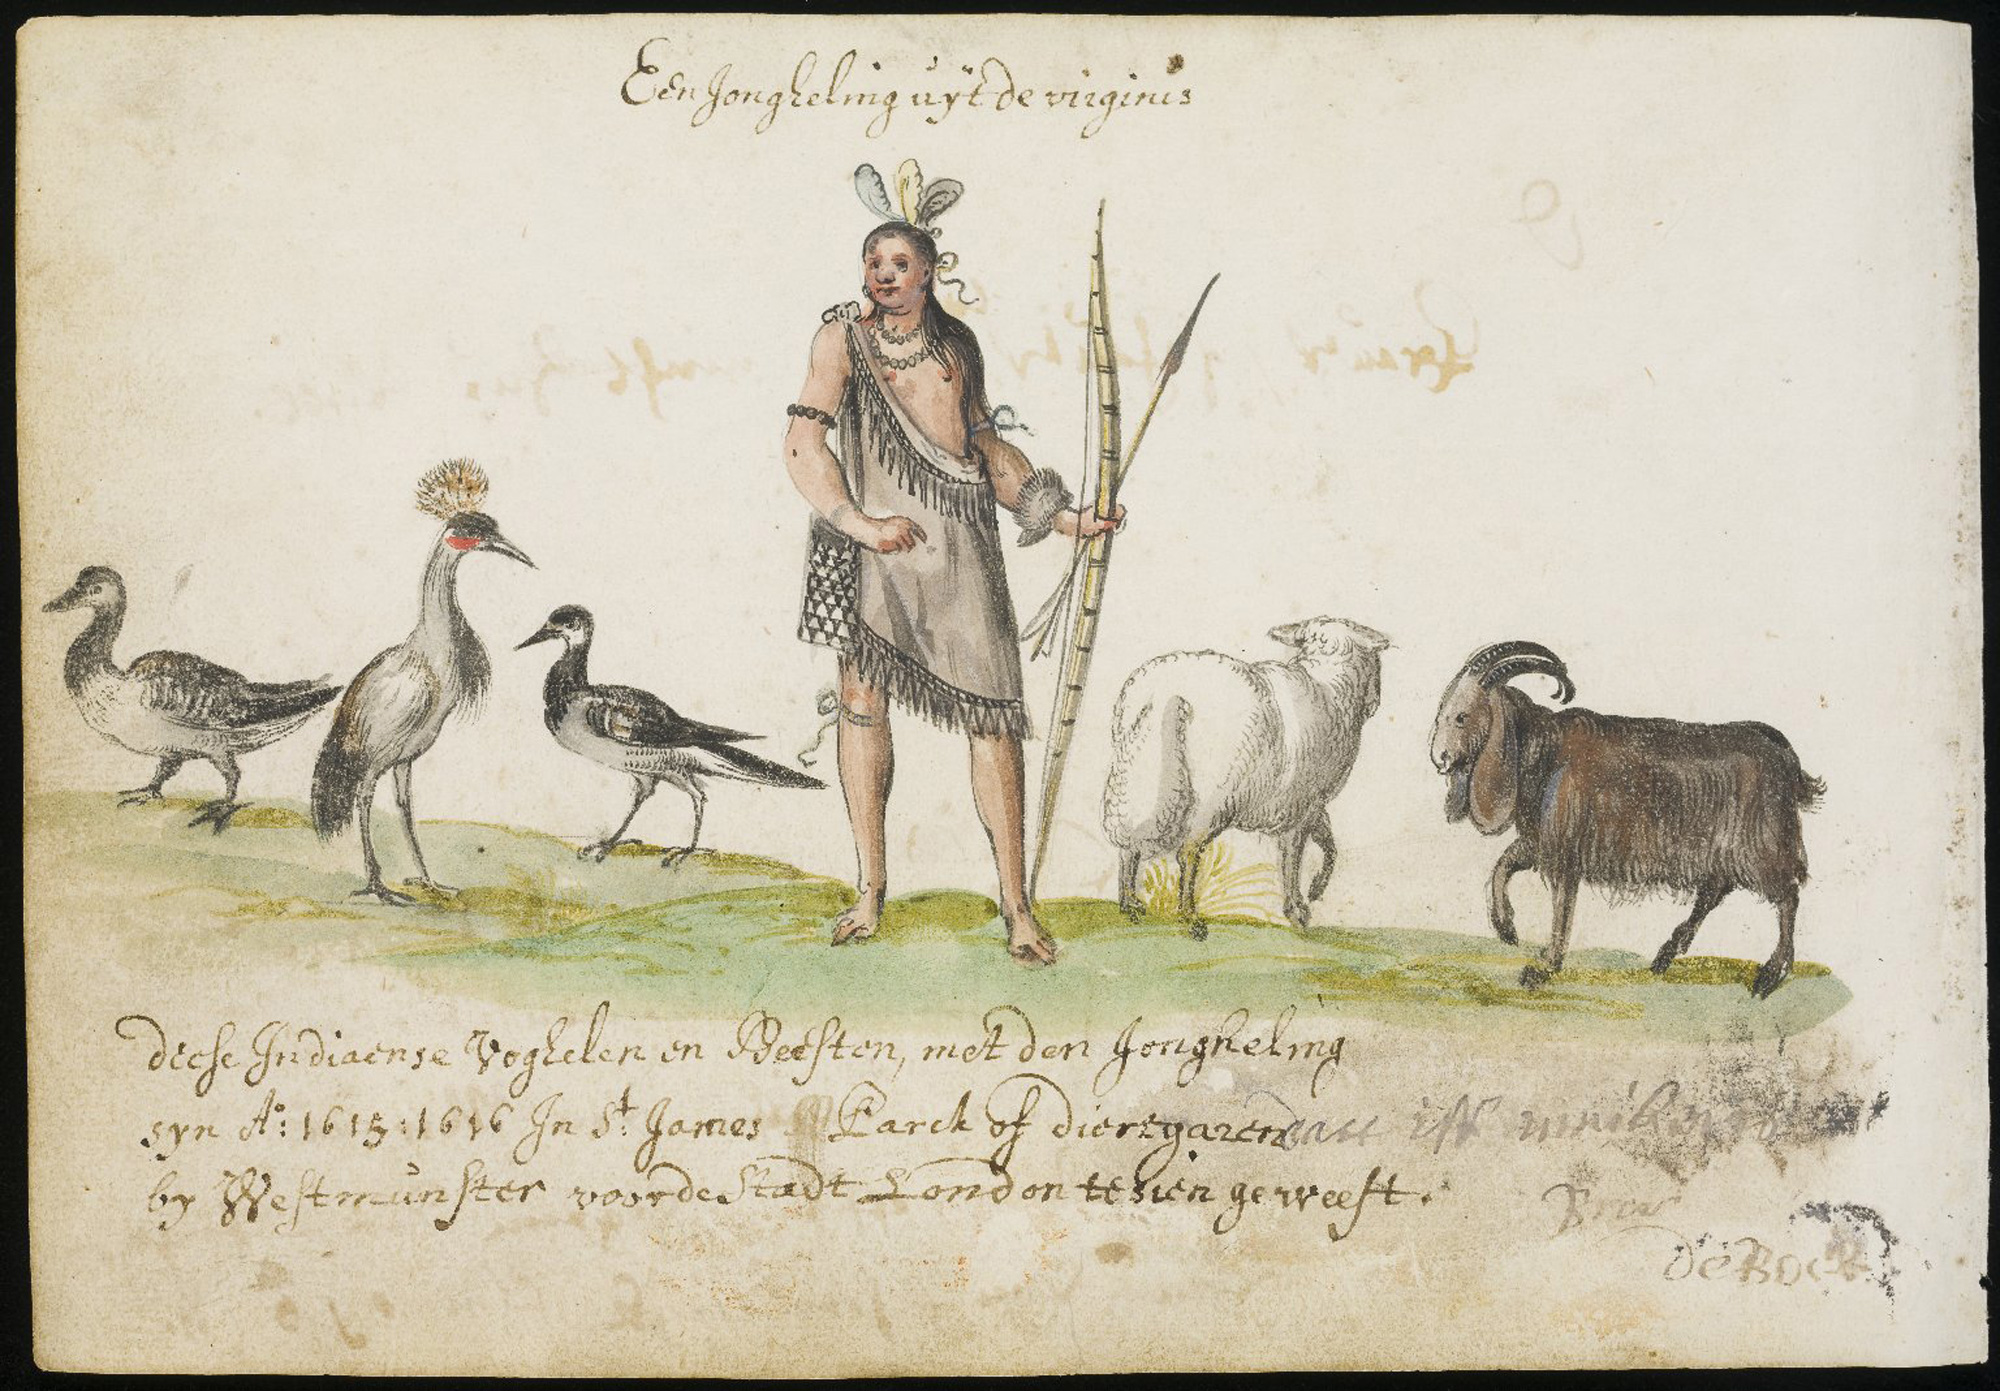 A Virginian Indian in St James's Park, from the Friendship Album of Michael van Meer